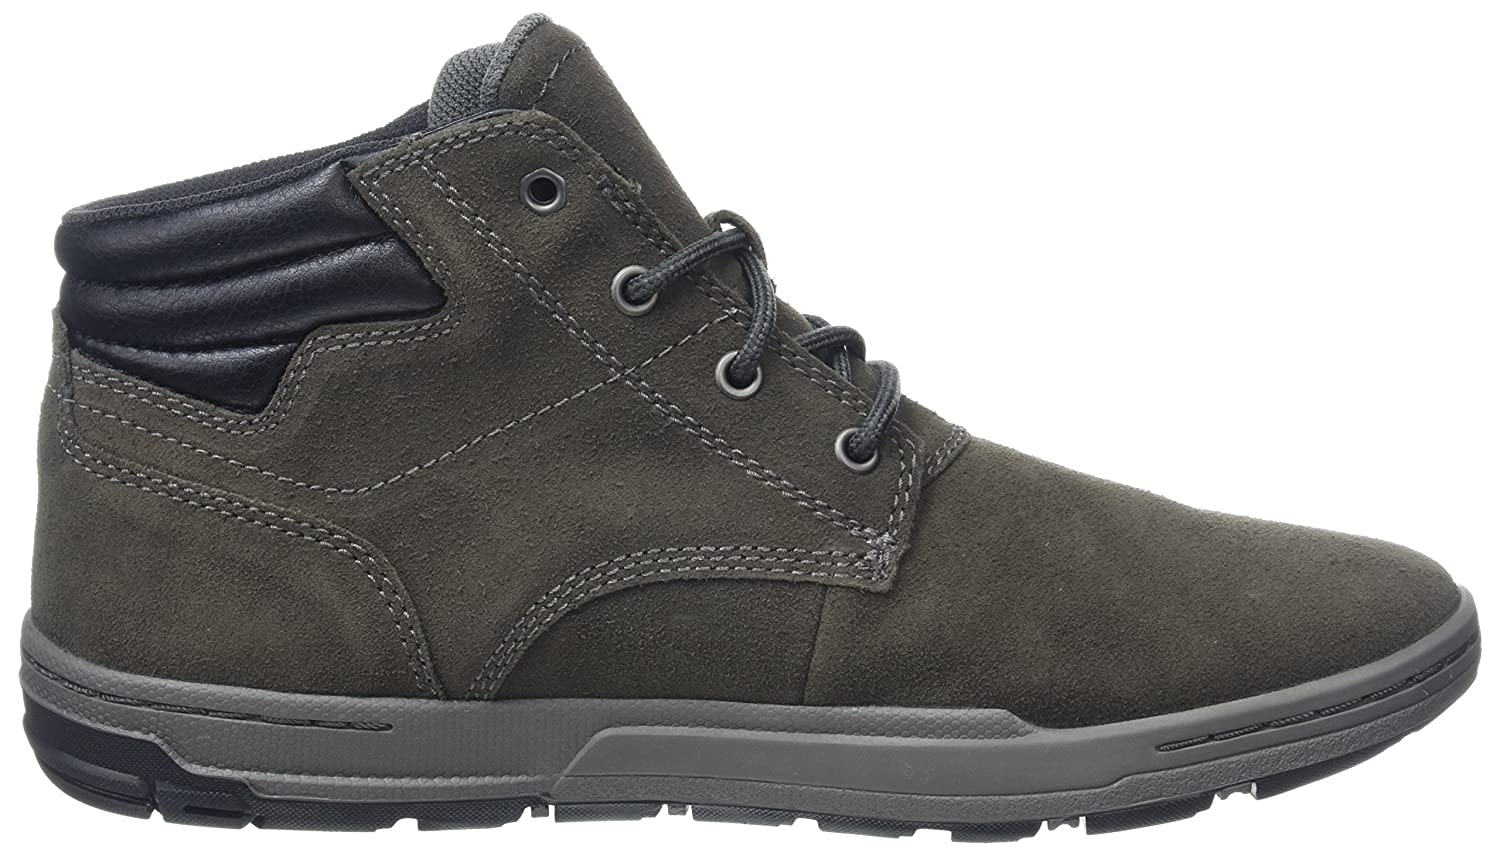 6c948f41bf3293 Caterpillar Creedence, Baskets Homme, Gris (Mens Pepper), 42 EU: Amazon.fr:  Chaussures et Sacs